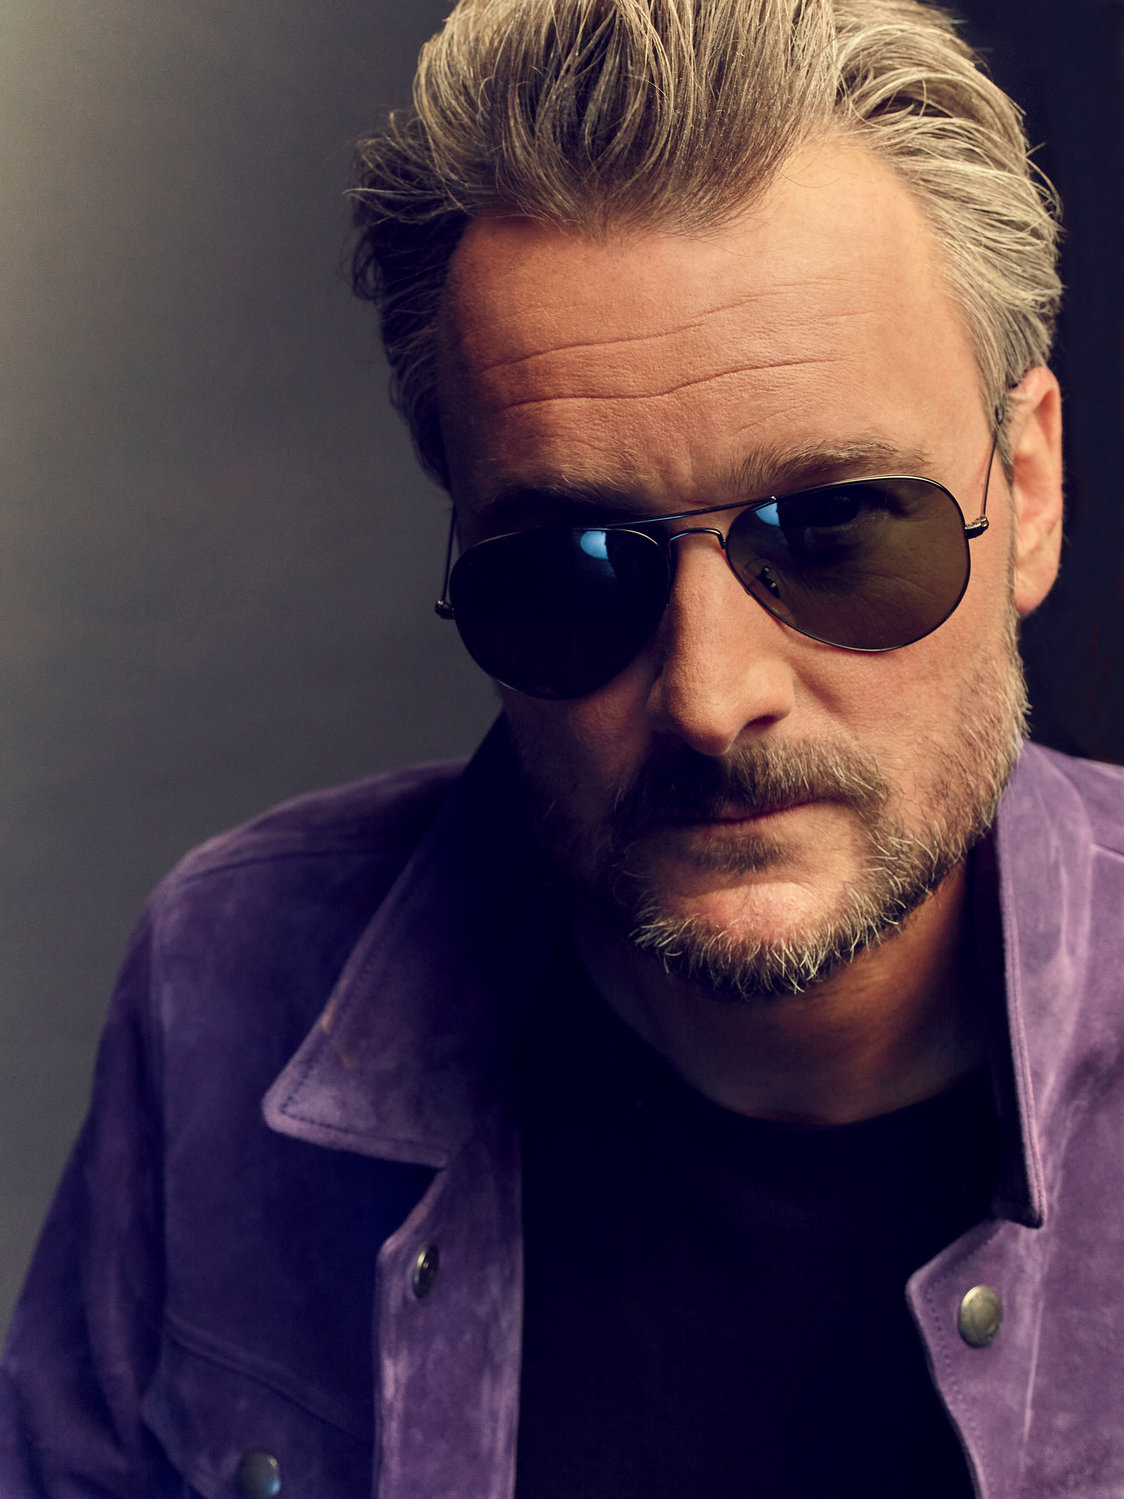 Country music star Eric Church will perform at the UBS Arena on Dec. 4.